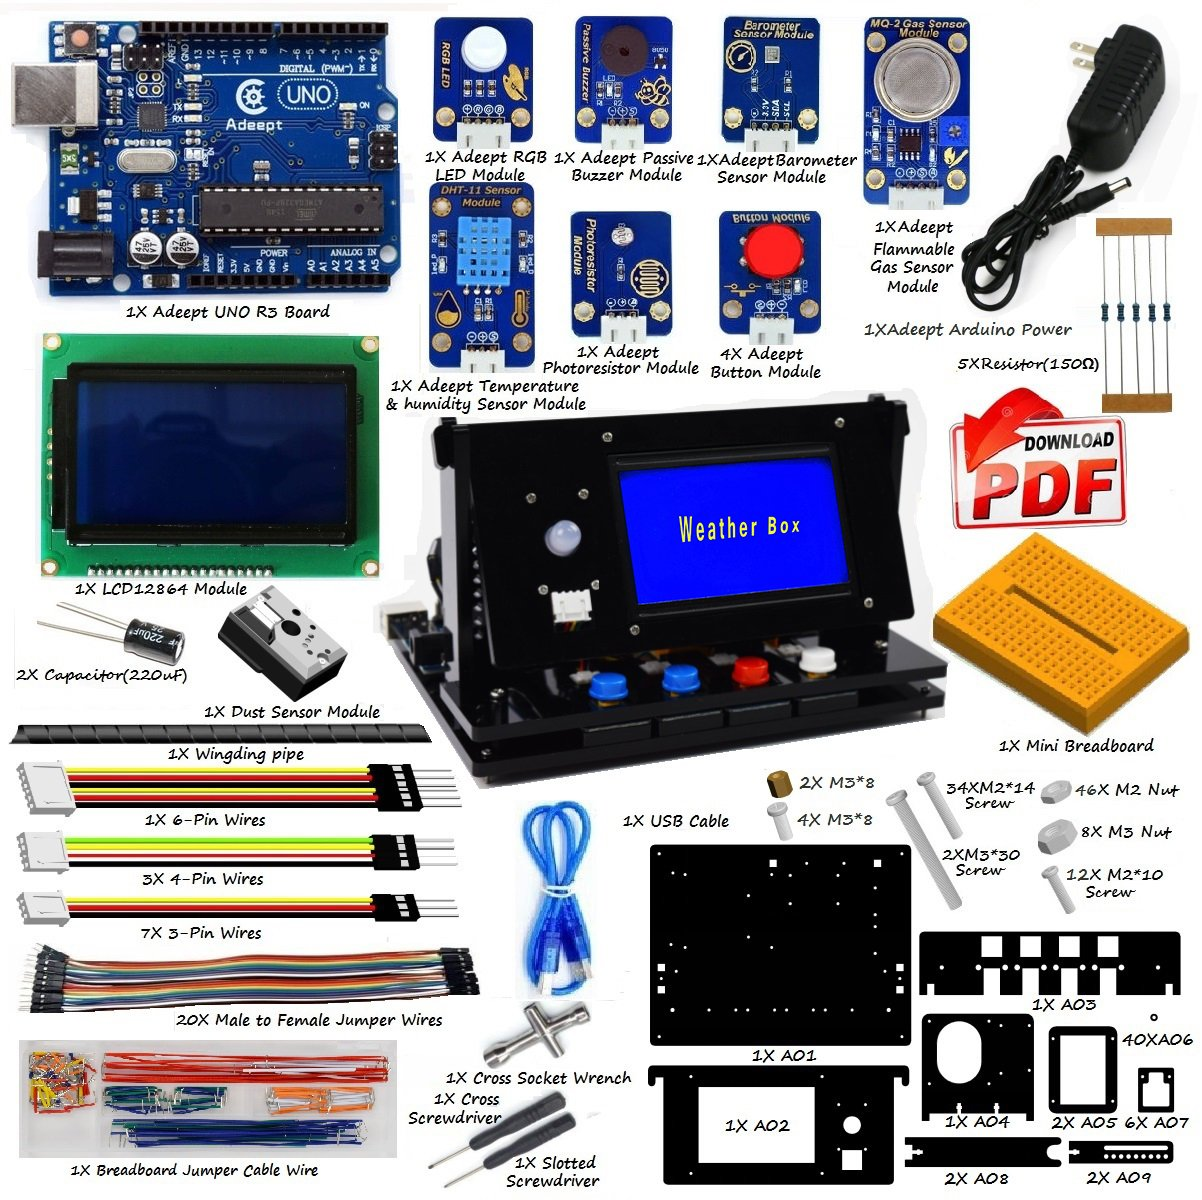 Adeept Indoor Environment Monitoring Kit | Weather Box Kit | Starter Kit for Arduino UNO R3 with Guidebook(PDF) and Code | UNO R3 Project Complete Starter Kit with Tutorial ADA018